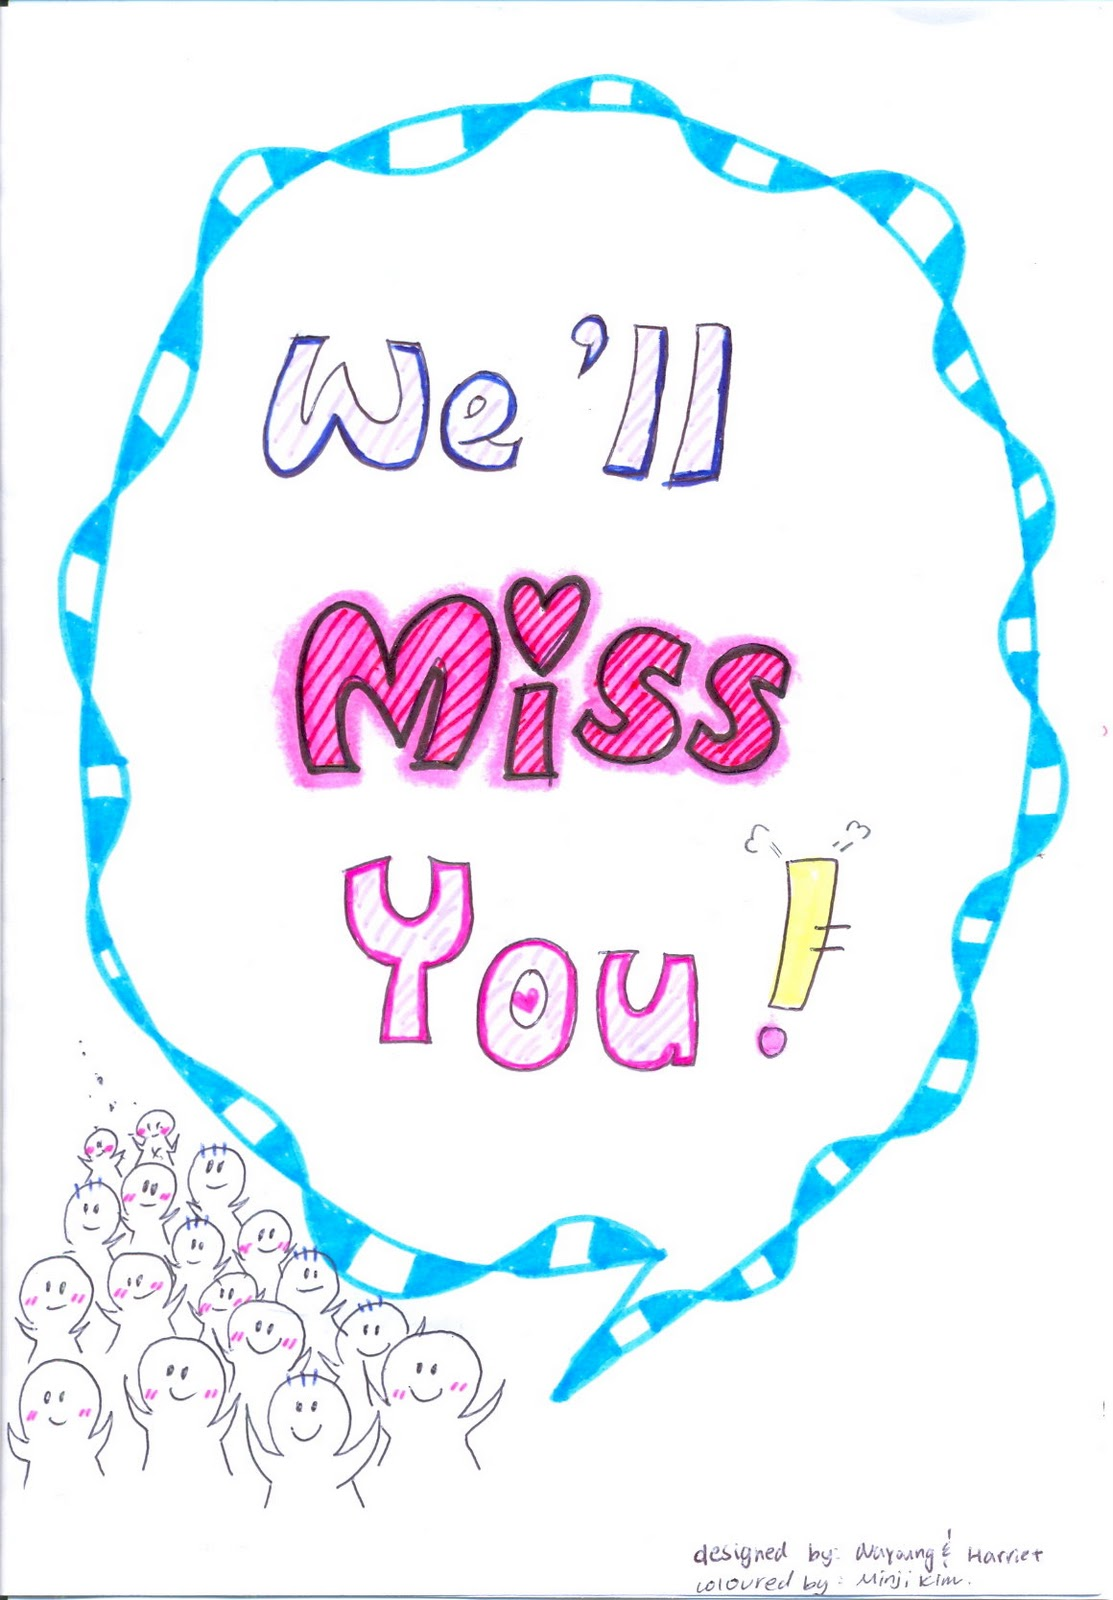 Staff clipart farewell Cliparts Leaving Goodbye Zone Funny